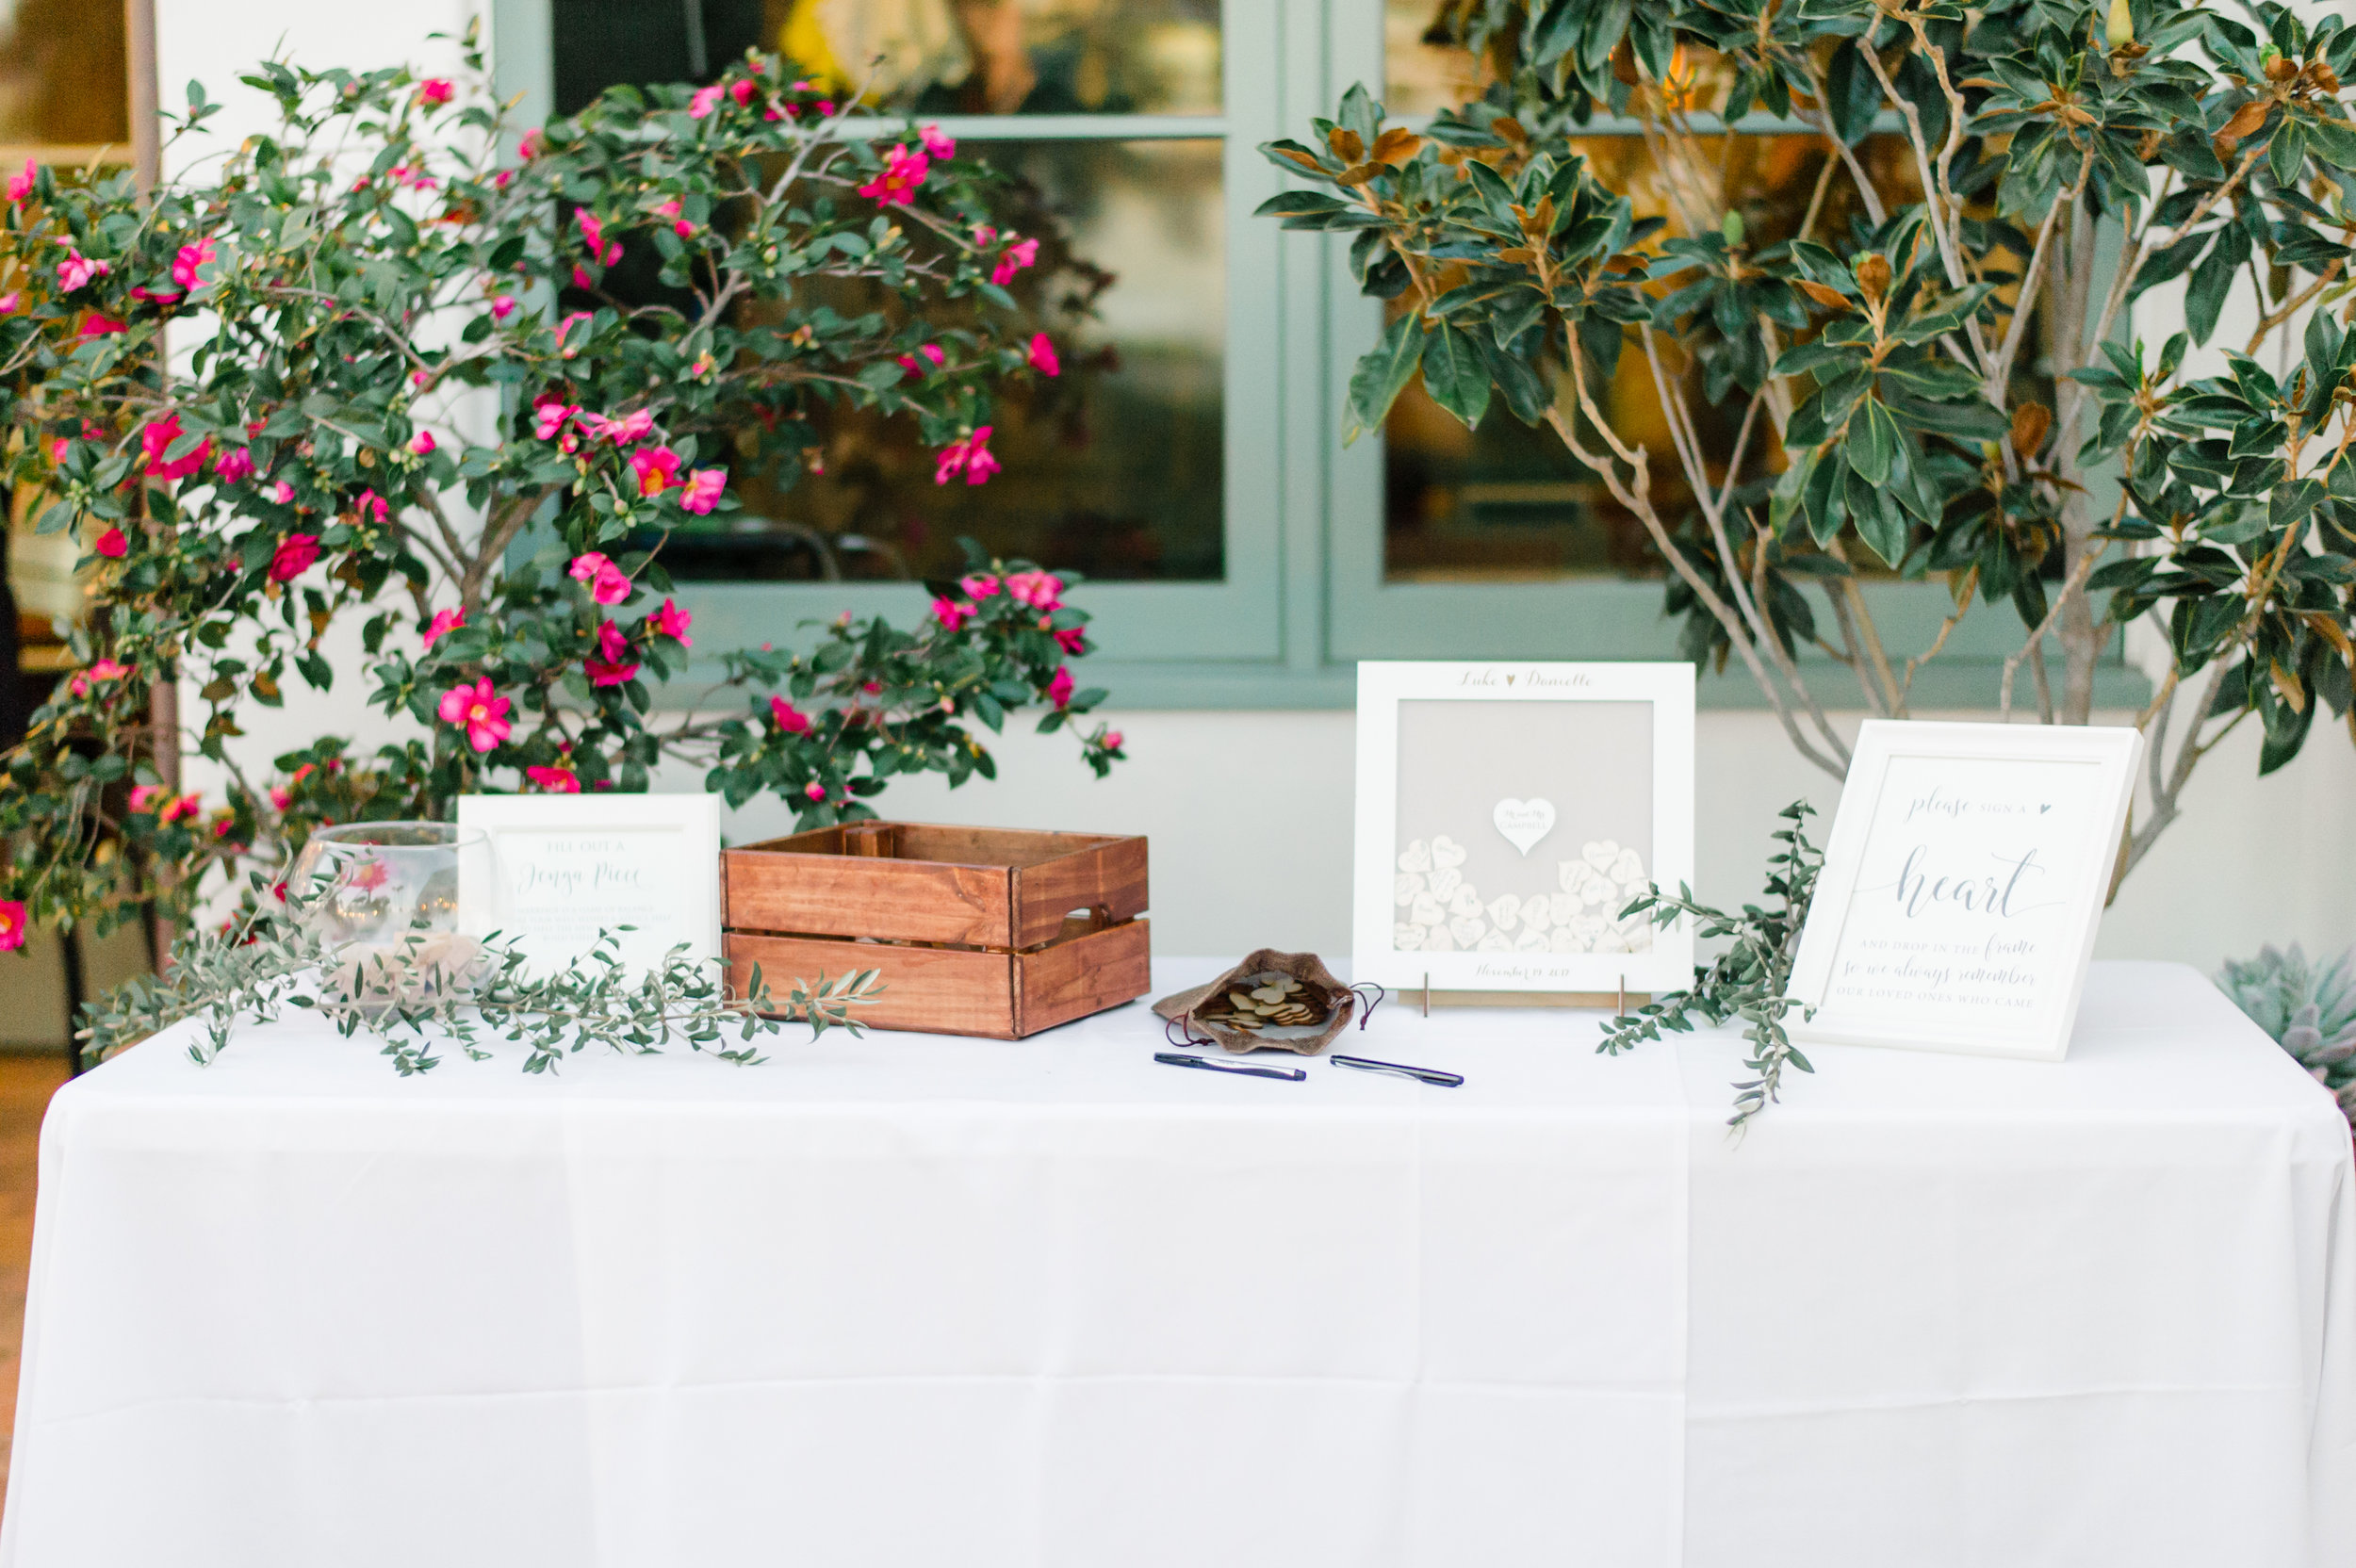 Unique guest book ideas during wedding reception captured by Taryn Grey Photography. Bridal hair and makeup by Vanity Belle in Orange County (Costa Mesa) and San Diego (La Jolla) thevanitybelle.com